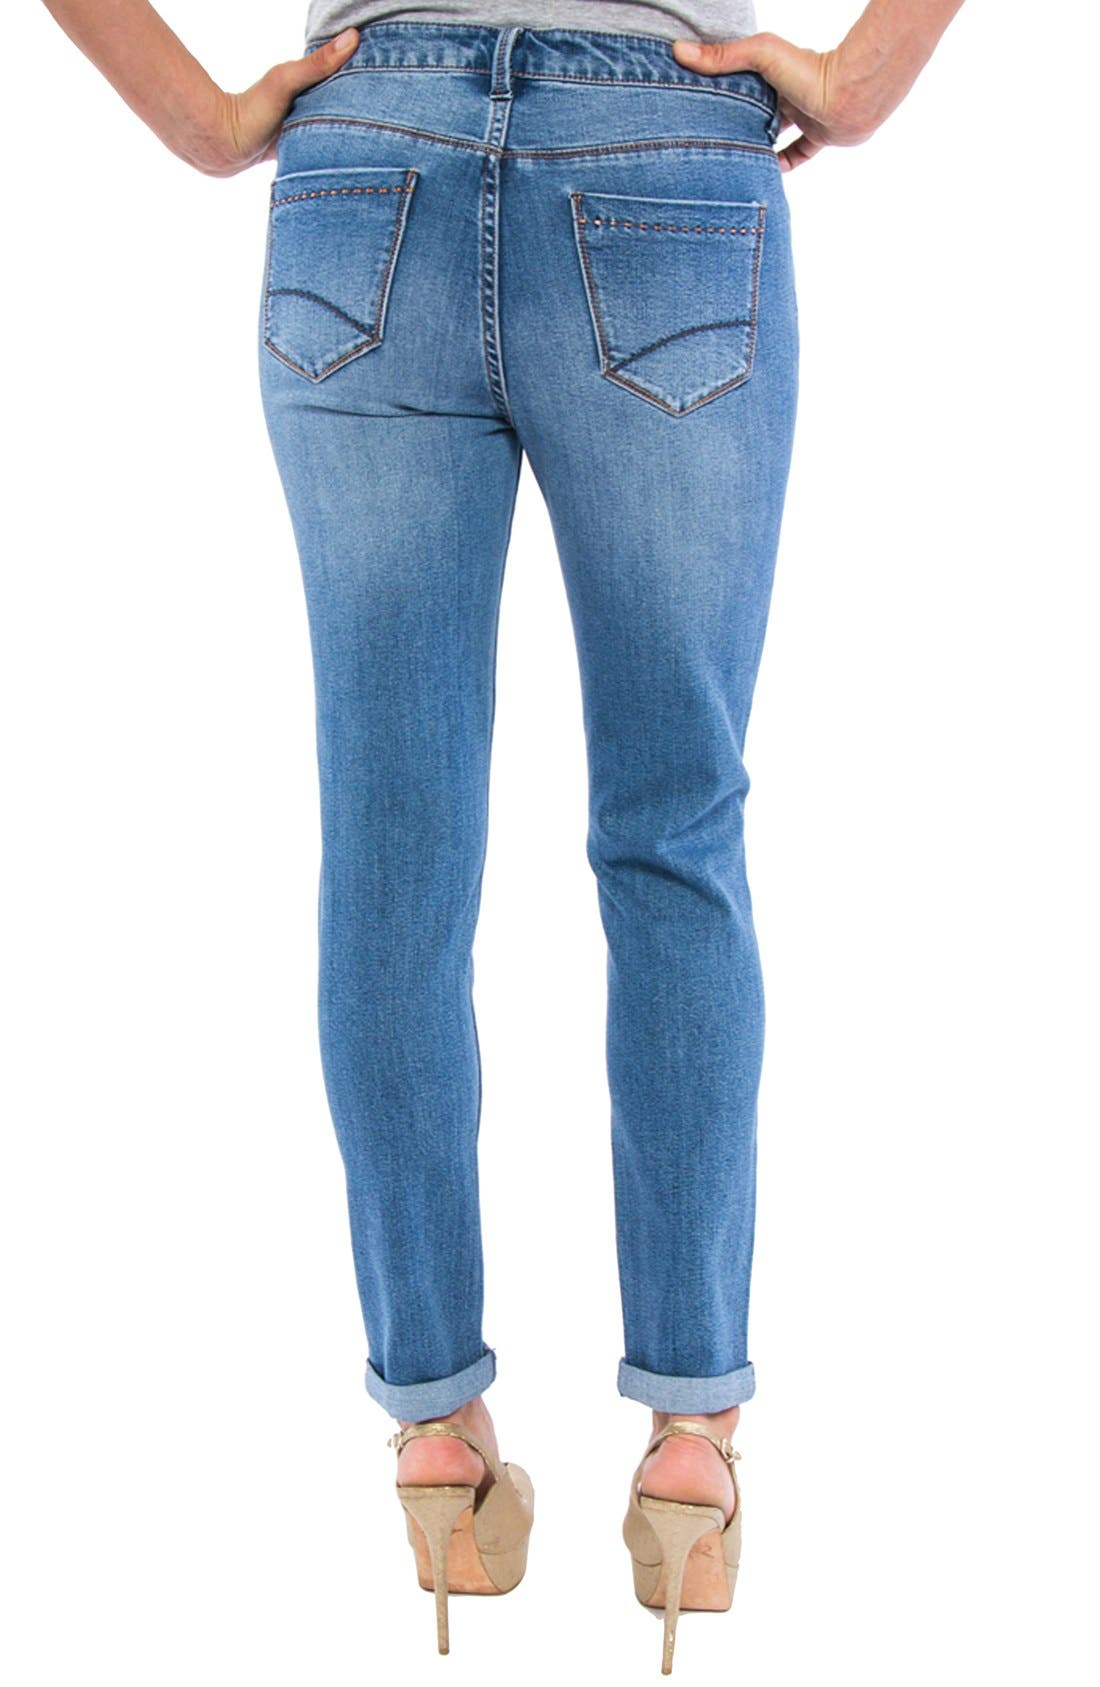 LIVERPOOL, Jeans Company 'Tory' Distressed Girlfriend Jeans, Alternate thumbnail 2, color, 401